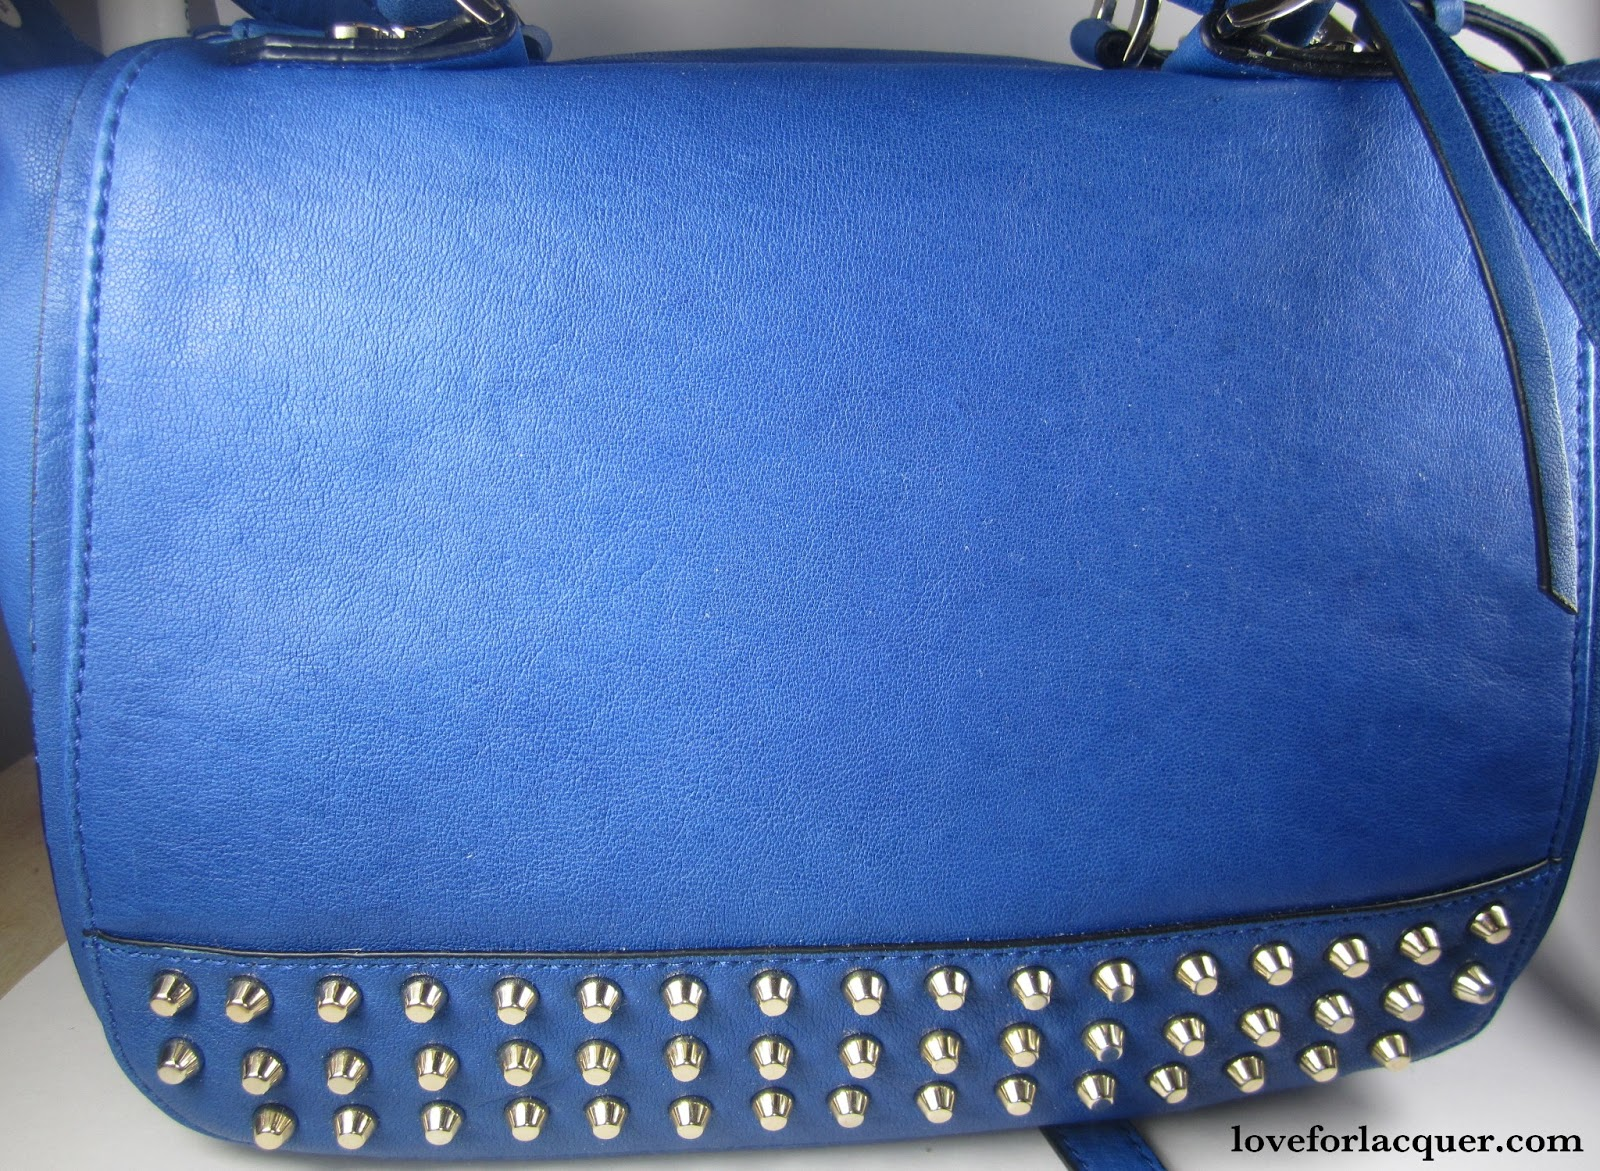 e86cfb4721 Joelle Hawkens Stardom Handbag Review + GIVEAWAY!! - Love for Lacquer